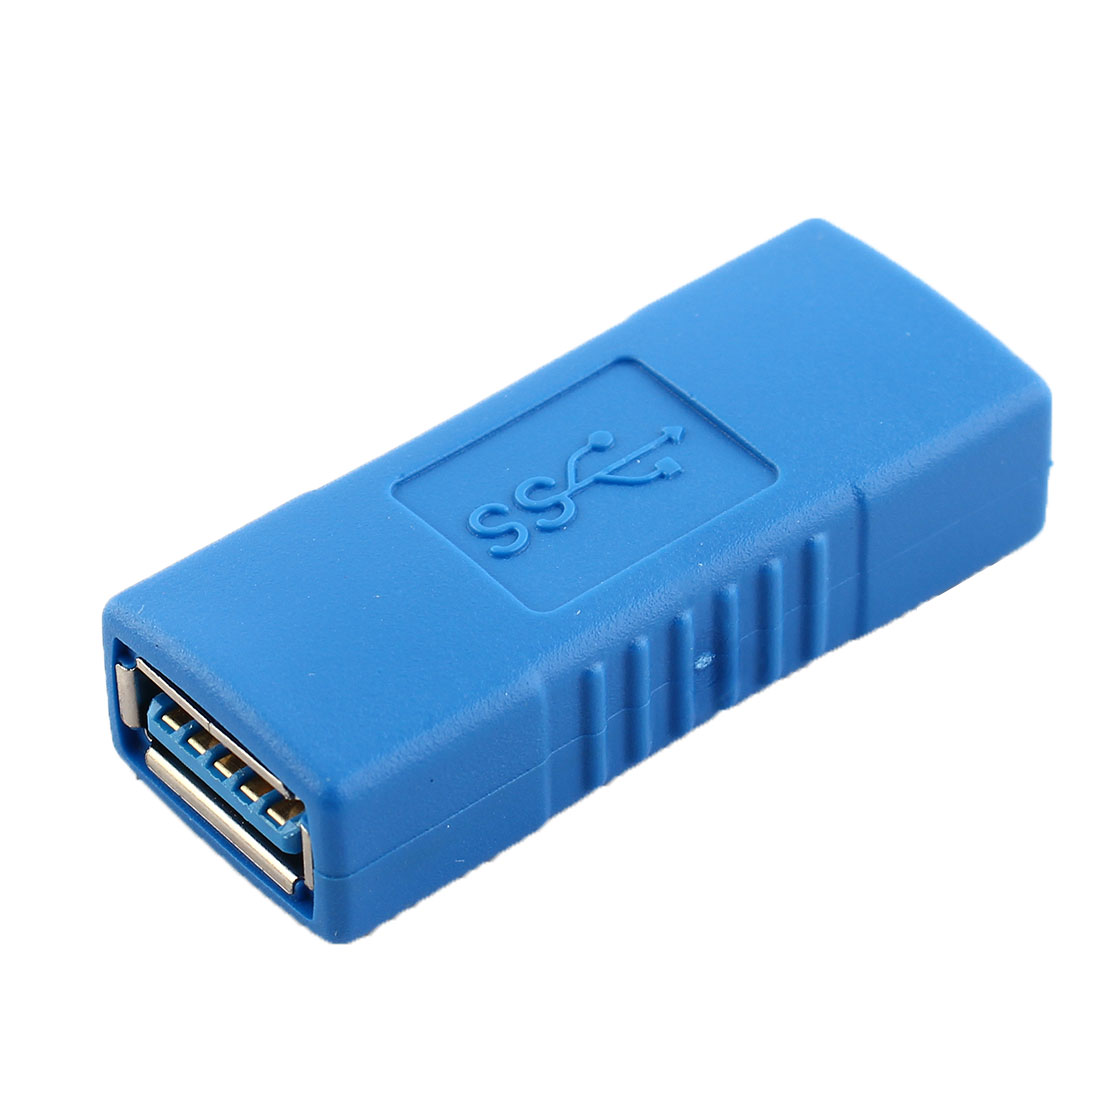 Blue USB 3.0 Female to Female 5 Pin Adapter Connector